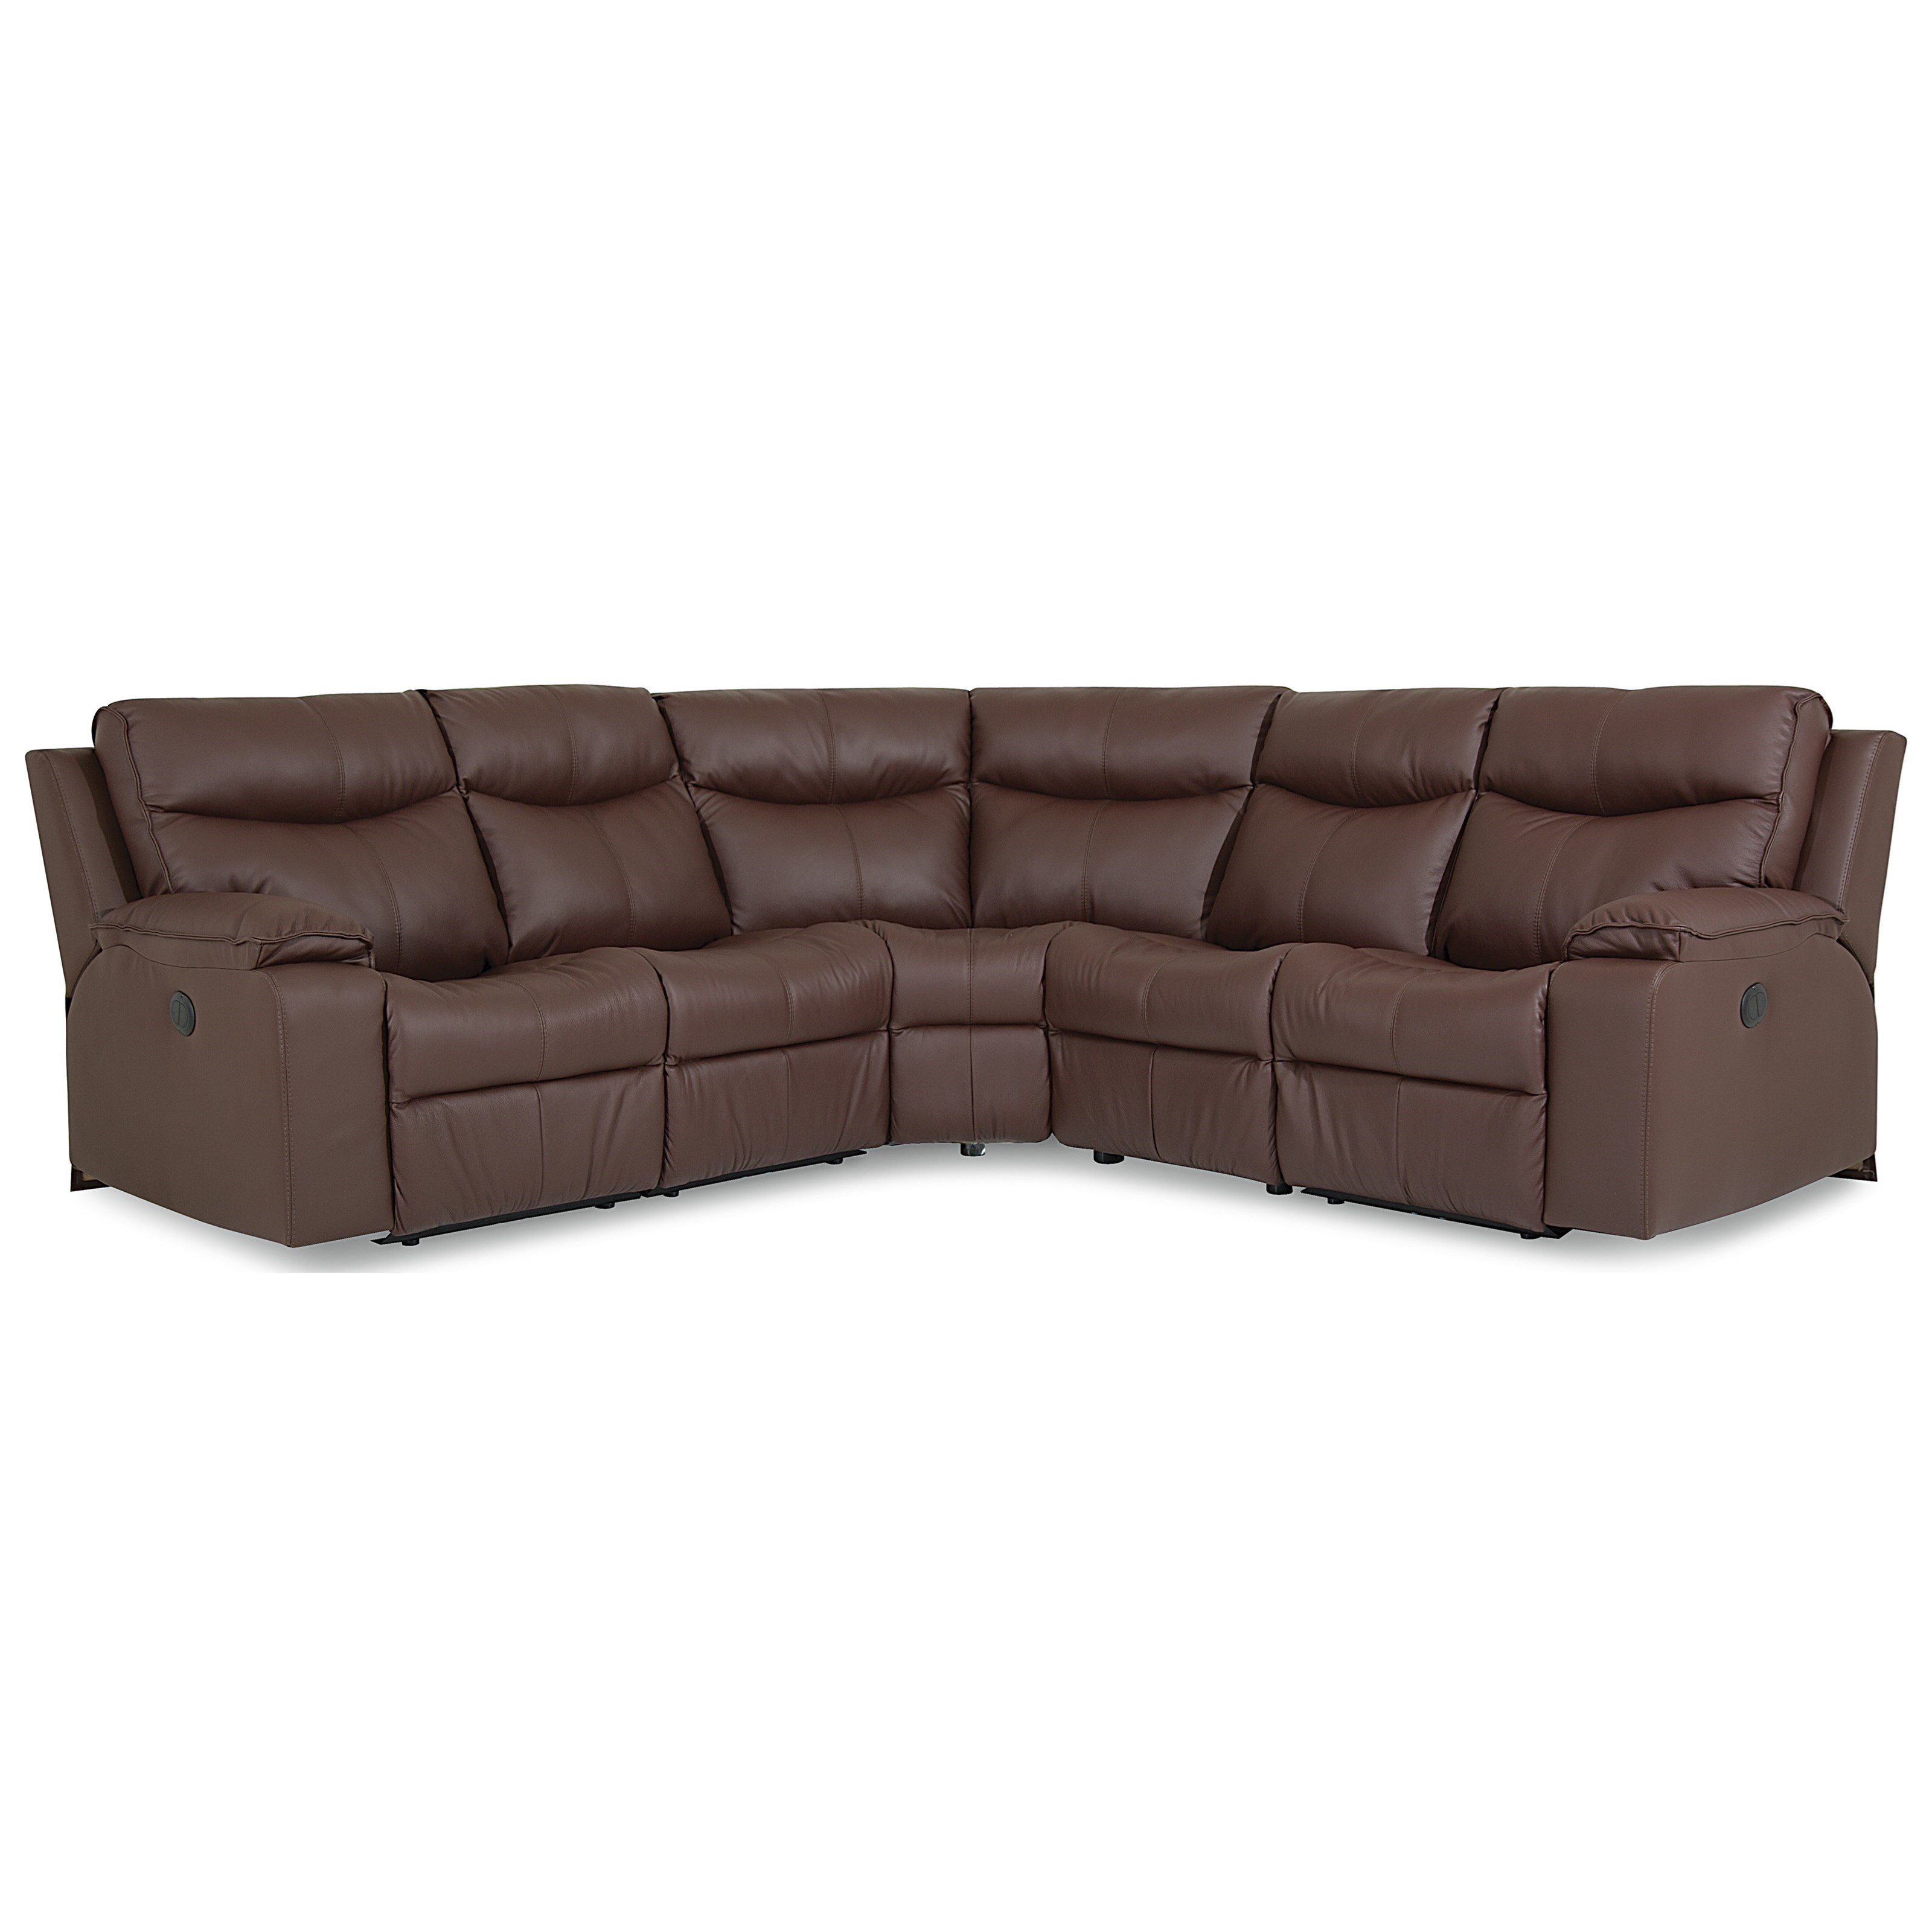 Providence Power Reclining Sectional by Palliser at Jordan's Home Furnishings